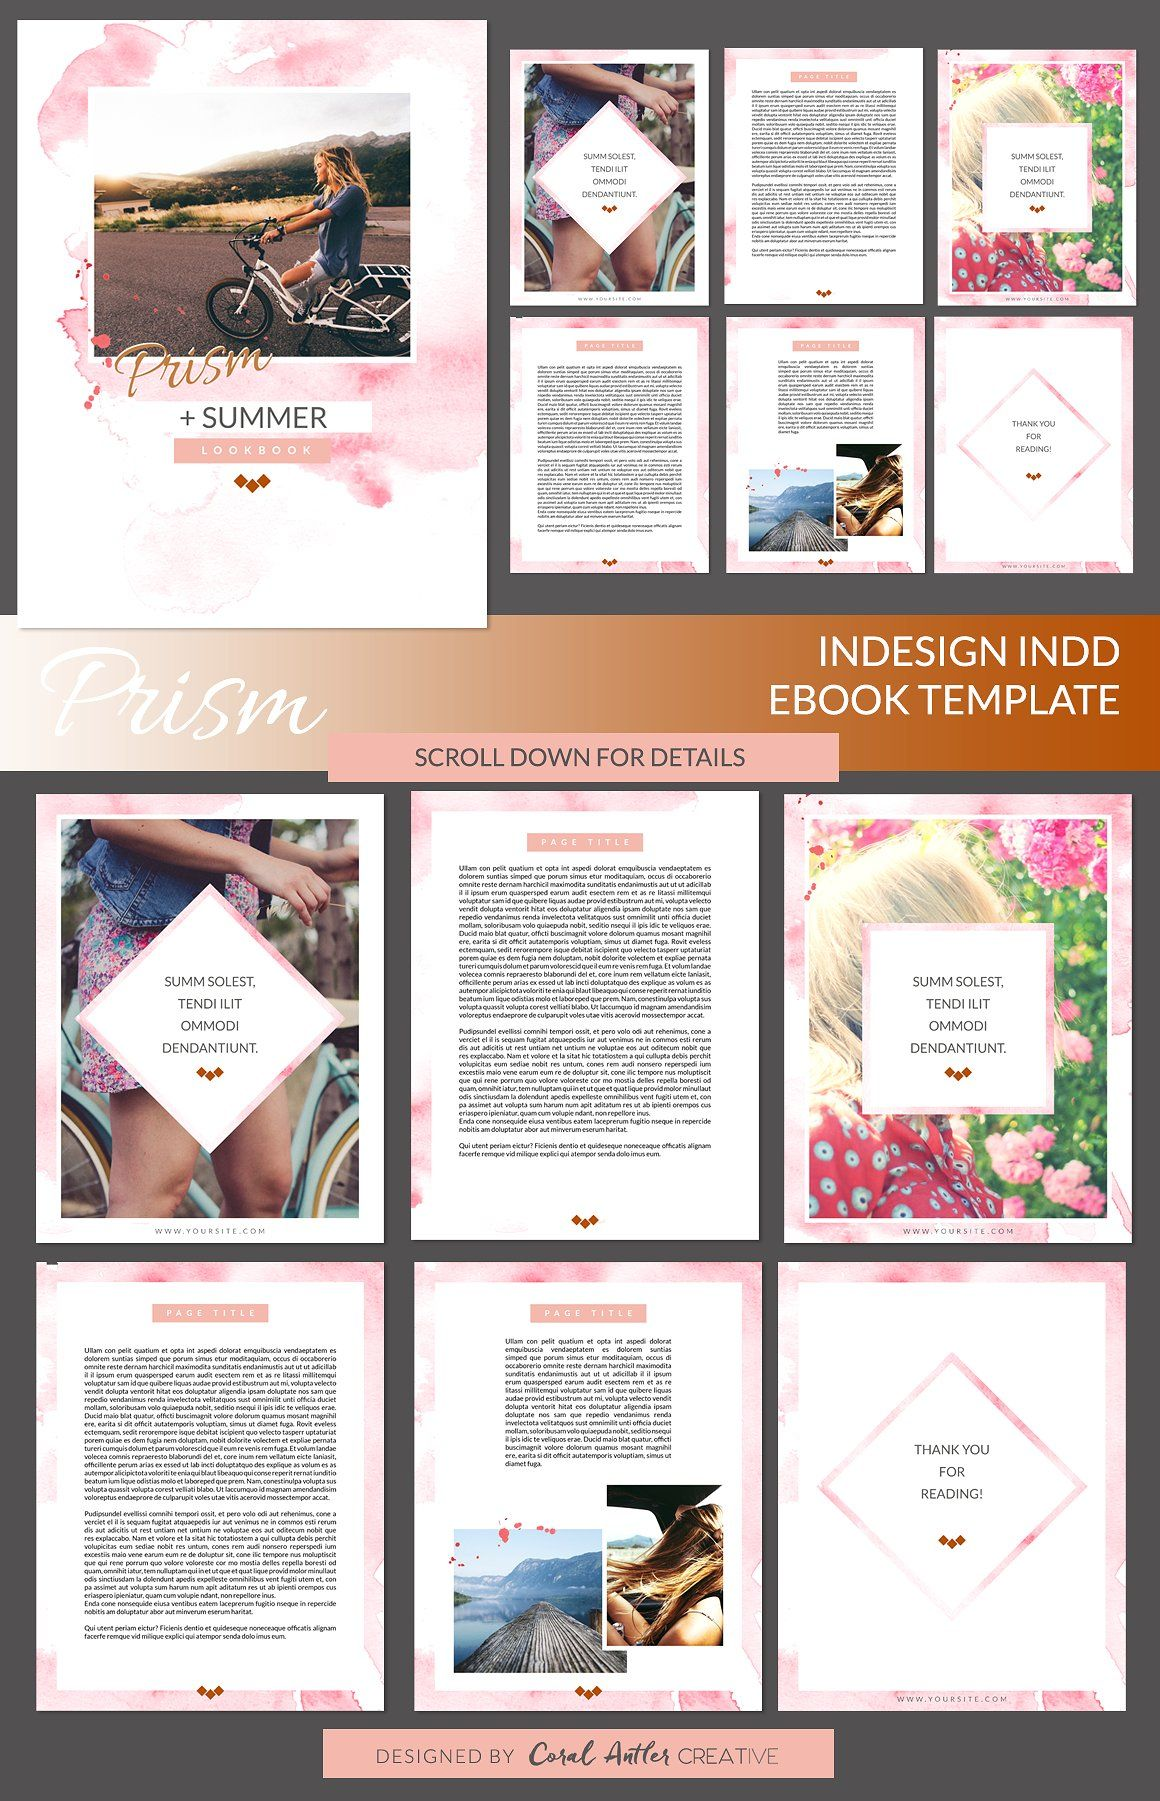 Prism InDesign Ebook Template by Coral Antler Creative on ...